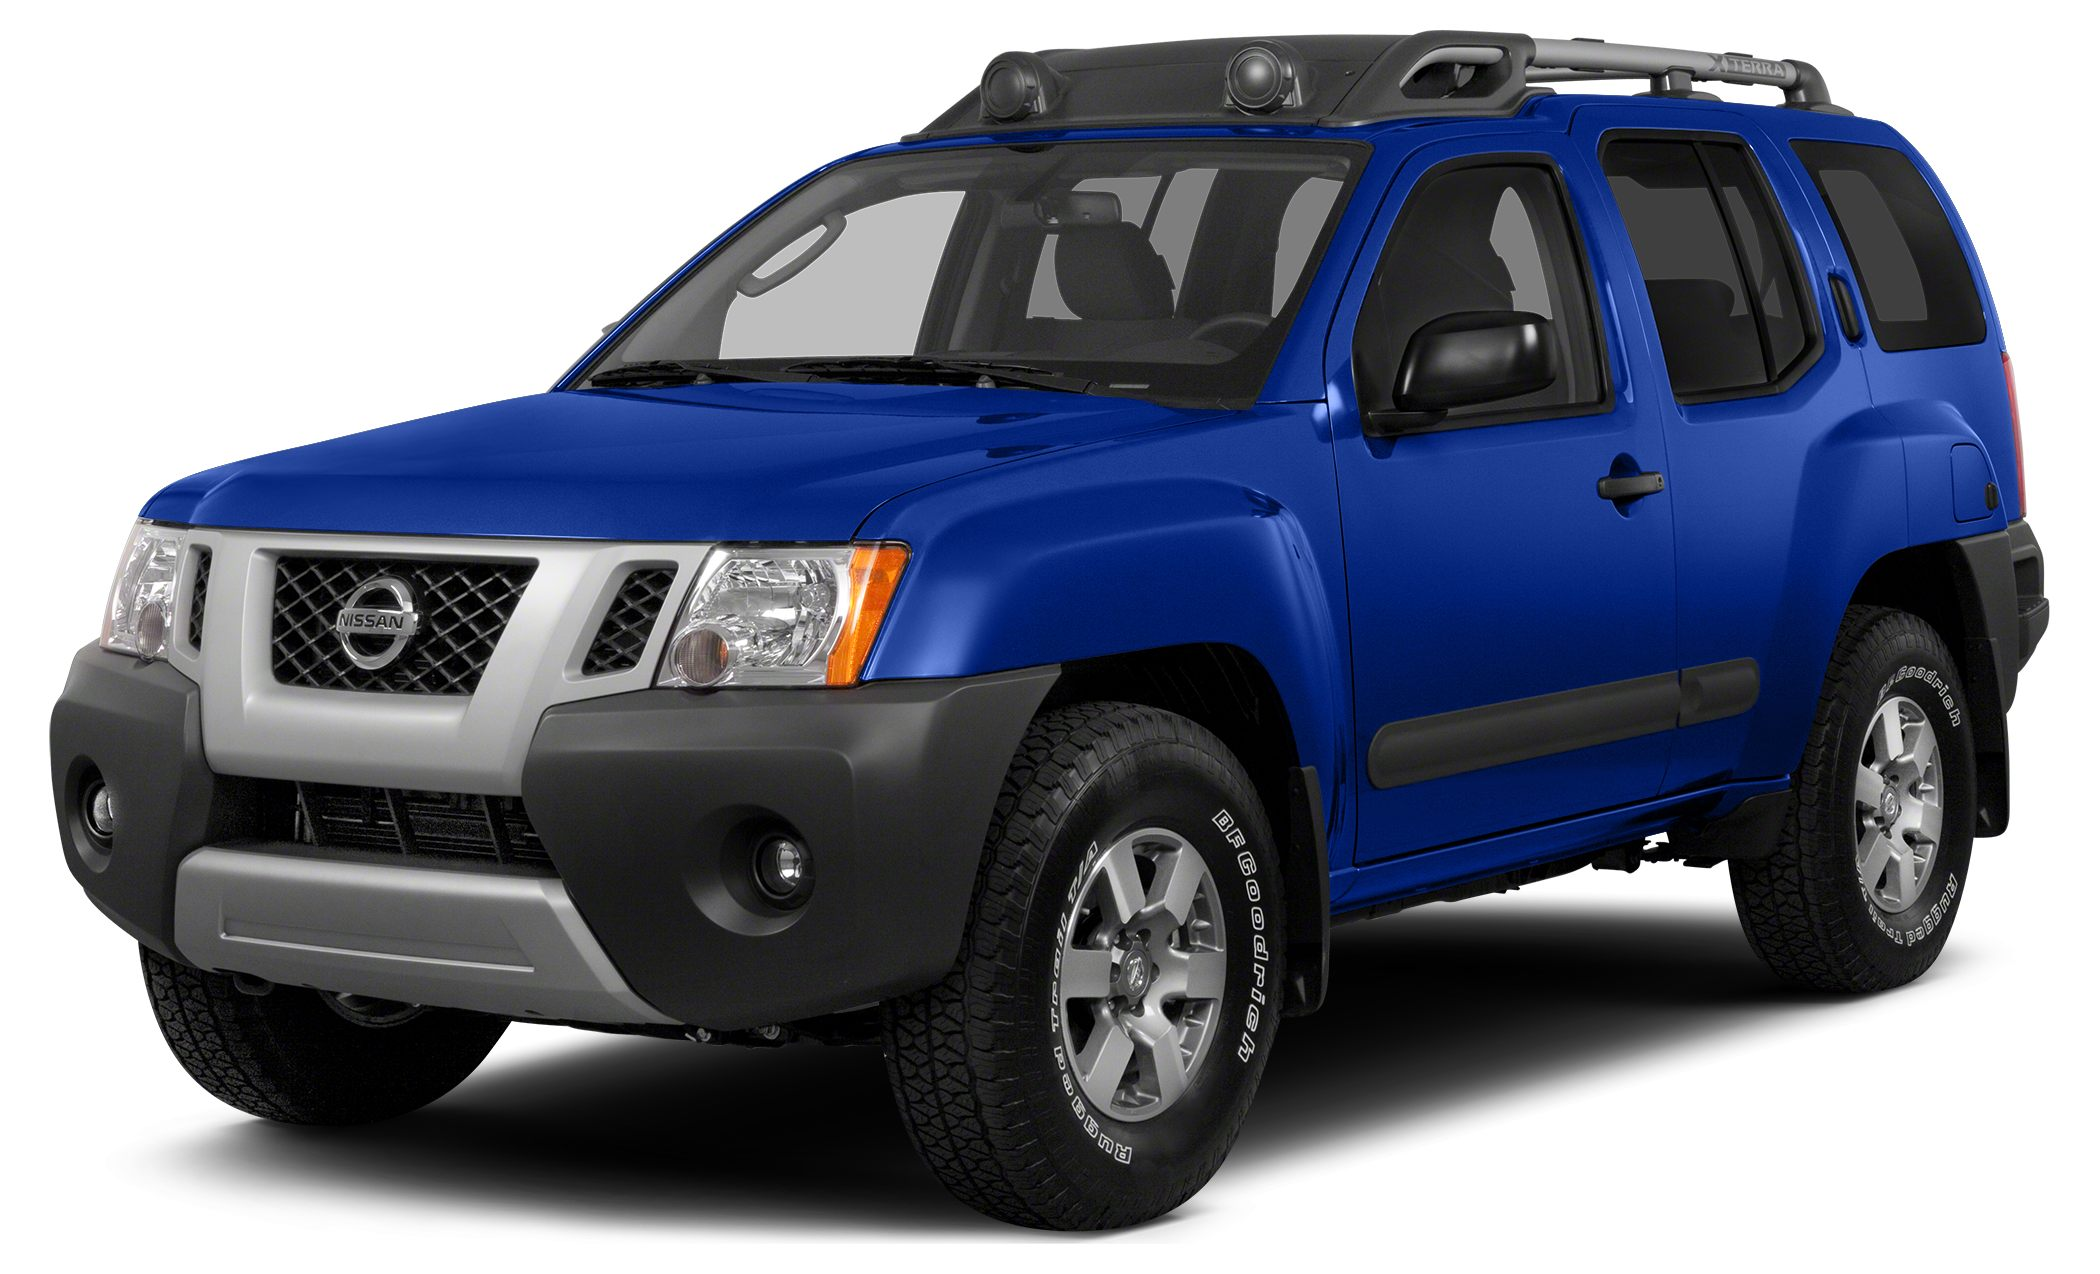 2015 Nissan Xterra S The Xterra is a remarkable vehicle from its edgy appearance to its devoted fo